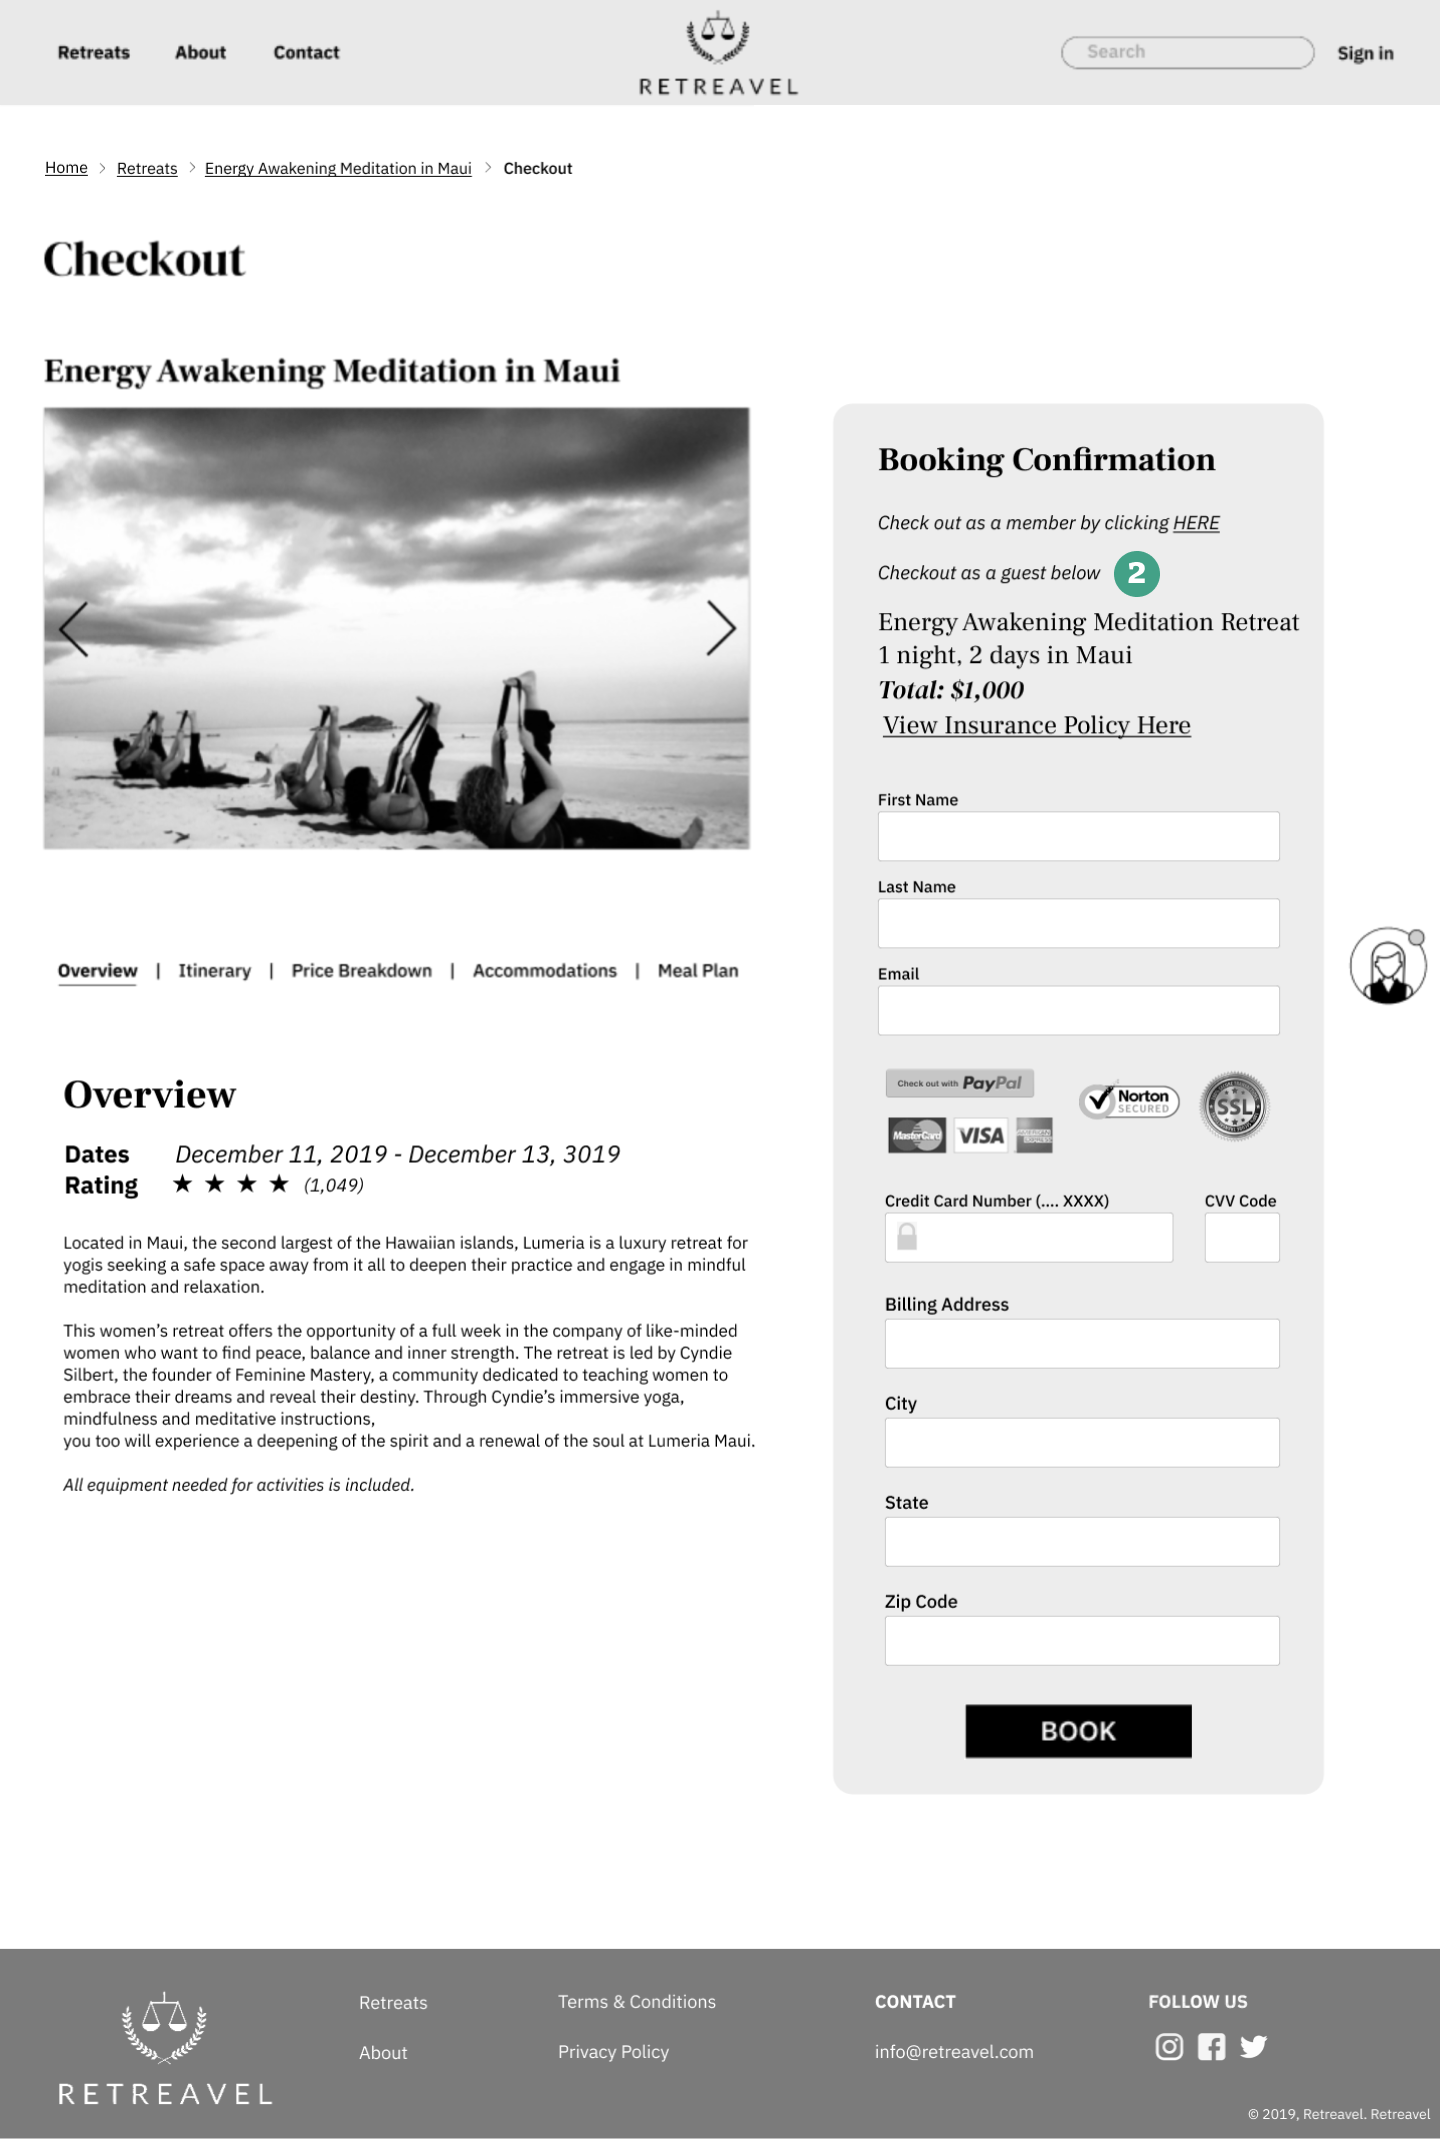 Booking Confirmation page (scroll on image)